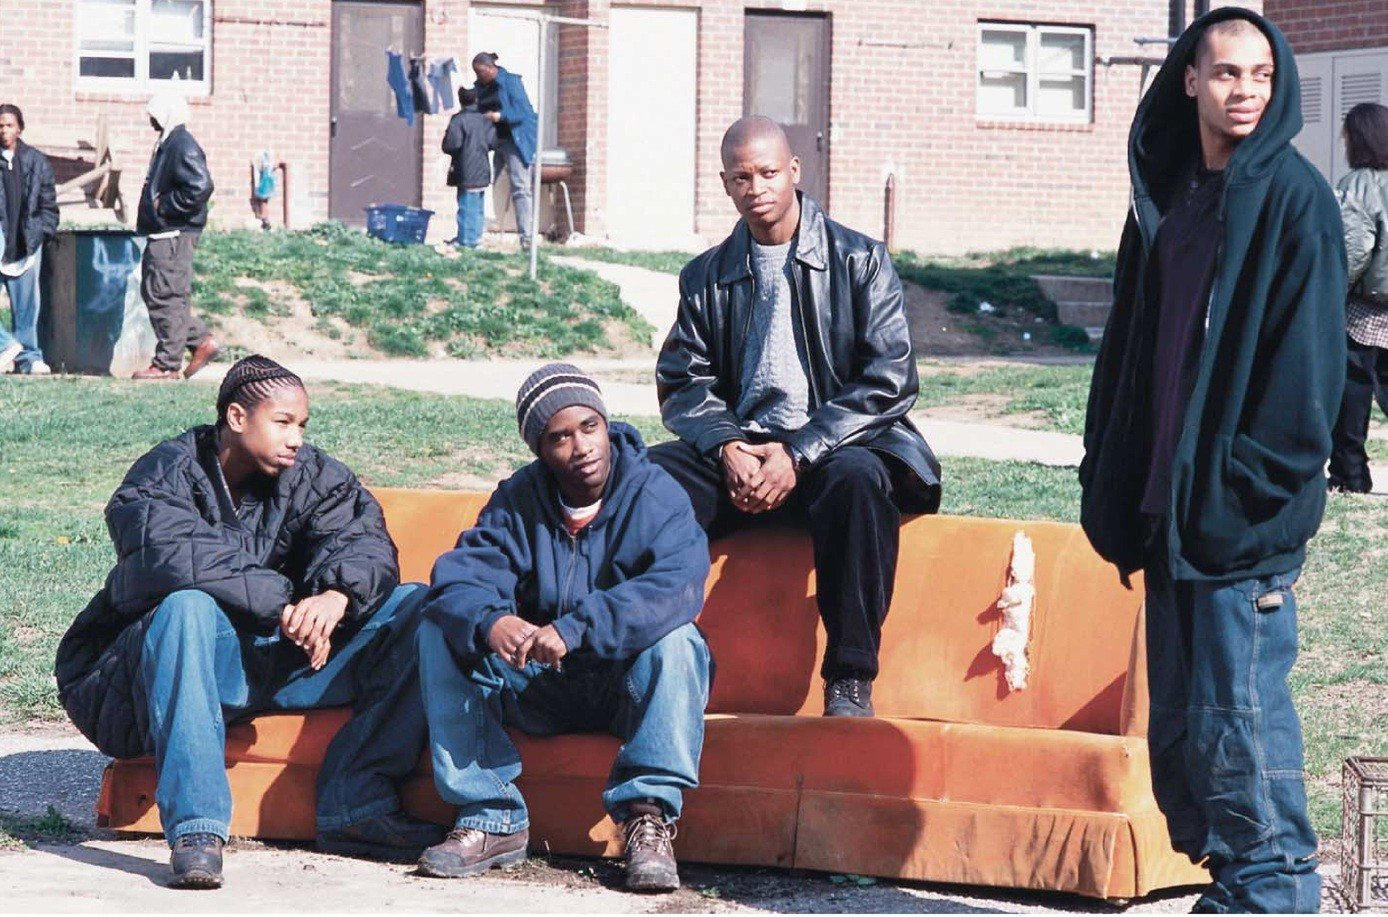 the wire season 1 tv show image 12 Things You Didn't Know About 'The Wire'